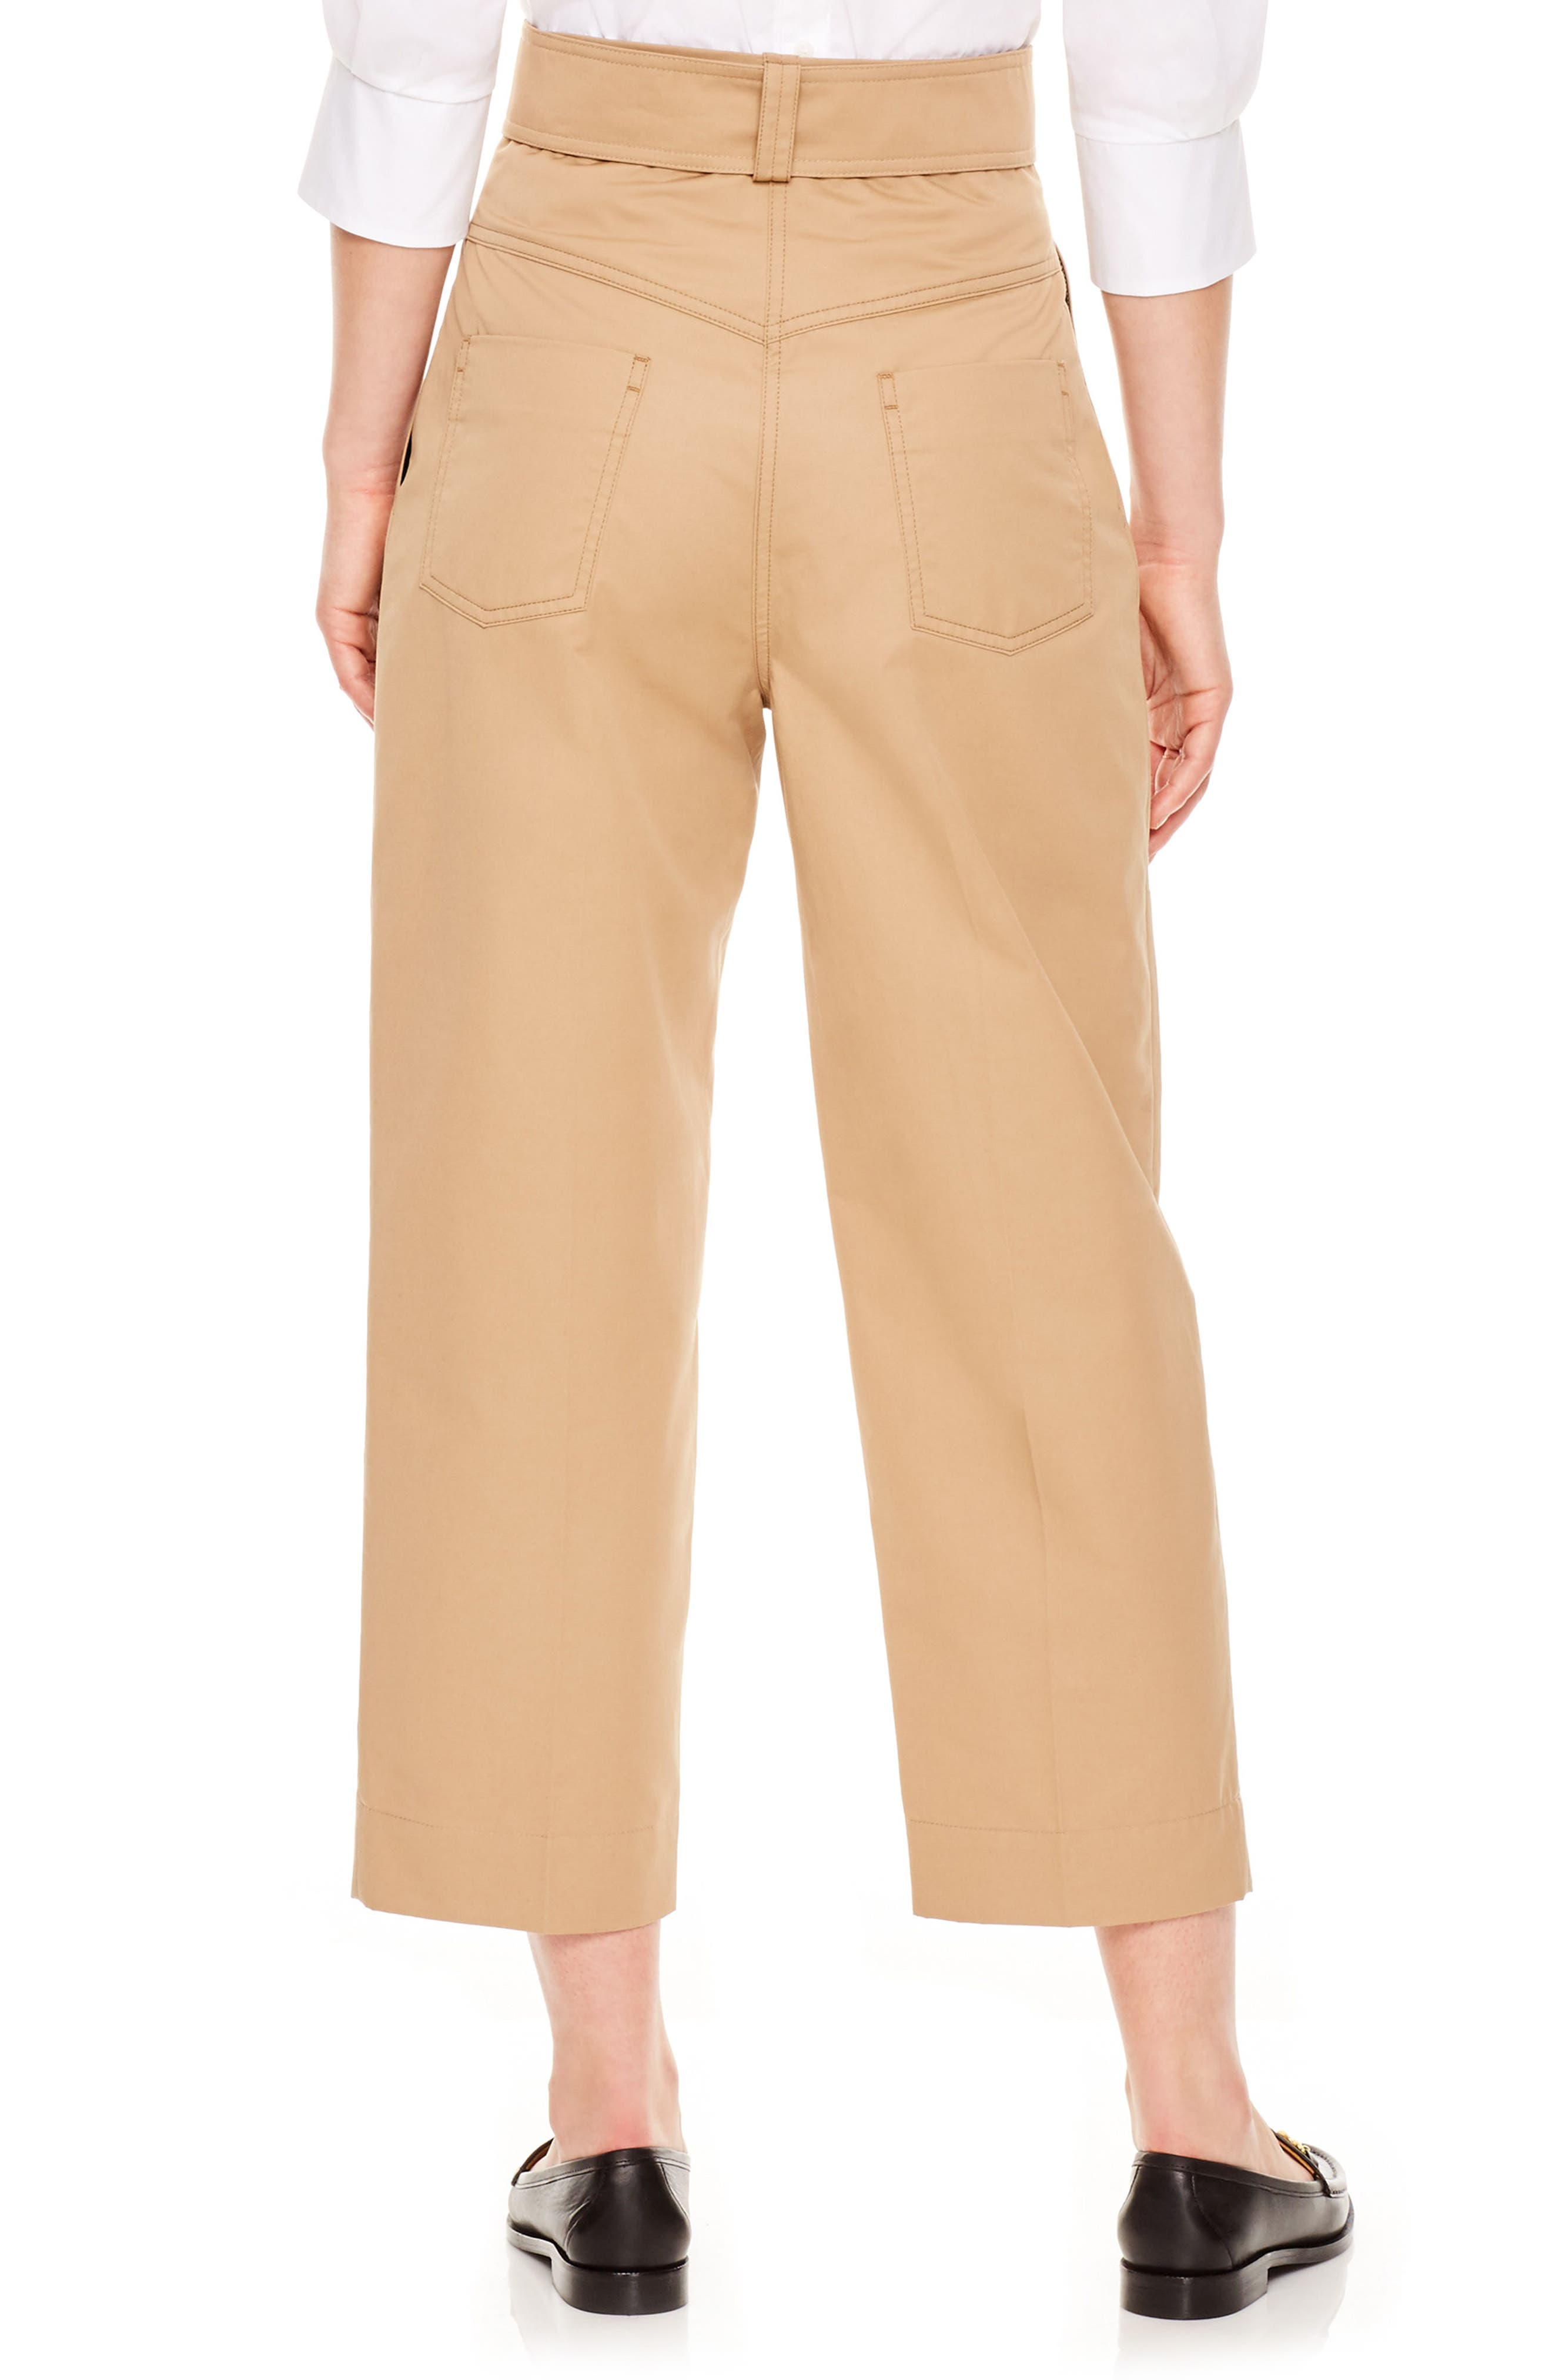 SANDRO,                             Beige Wide Leg Crop Pants,                             Alternate thumbnail 2, color,                             250